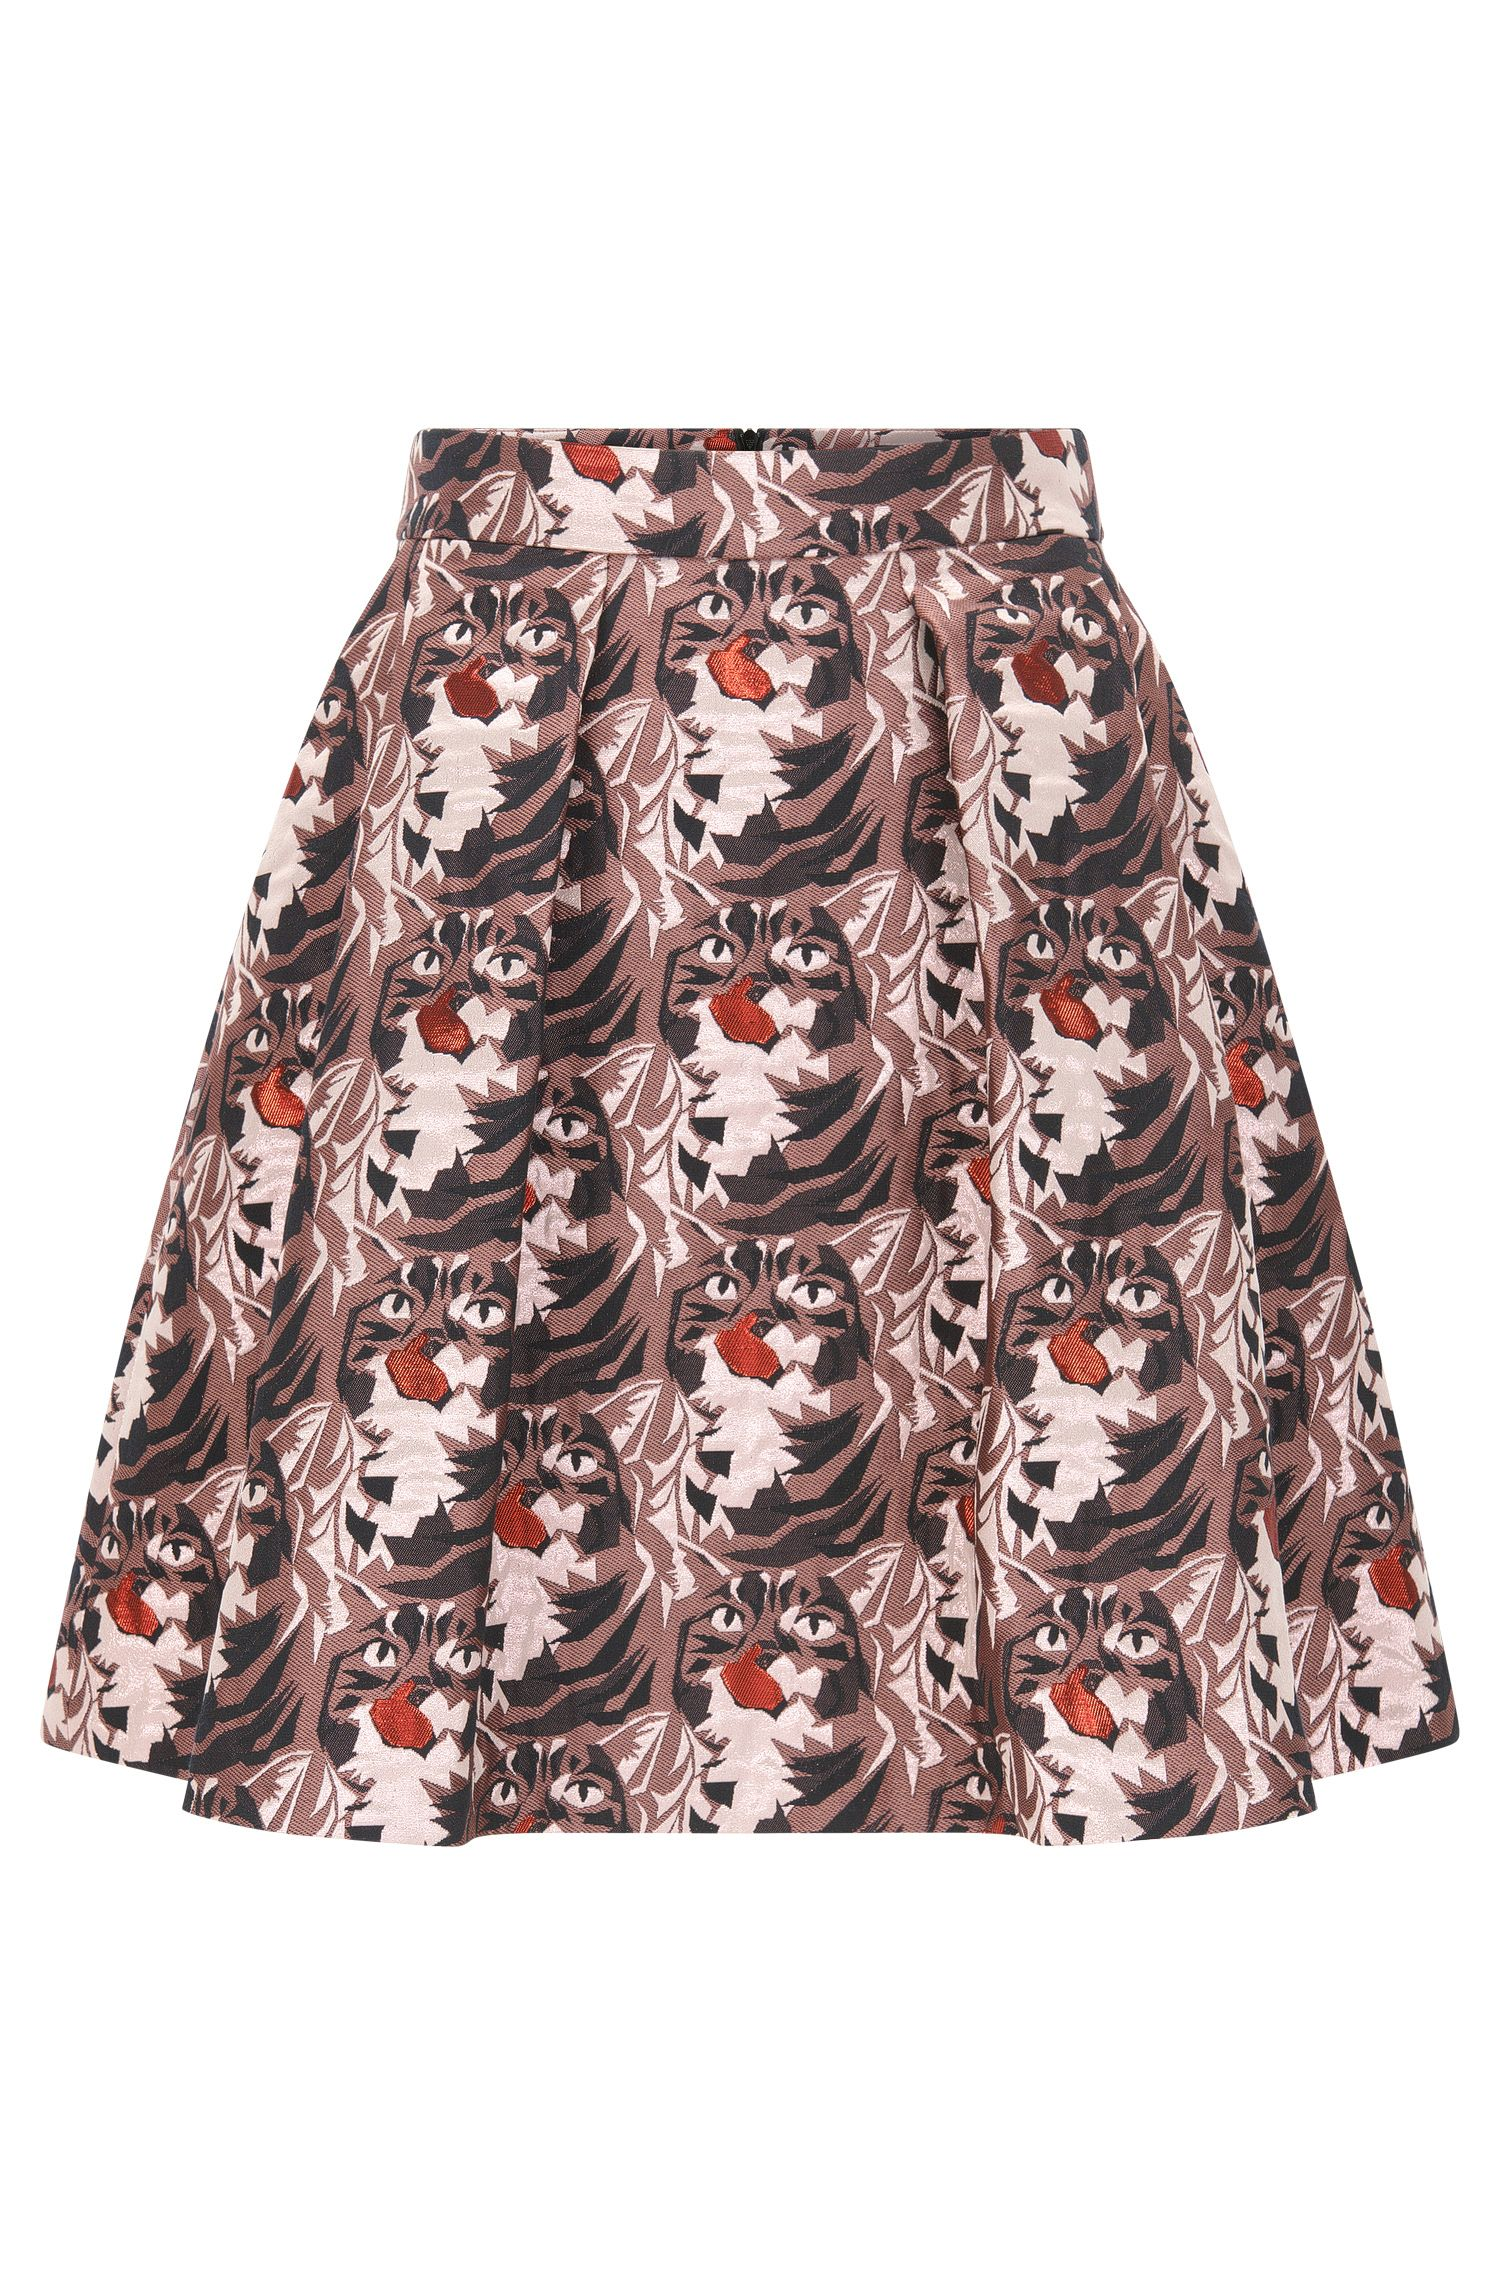 Regular-fit A-line skirt in lurex jacquard pattern